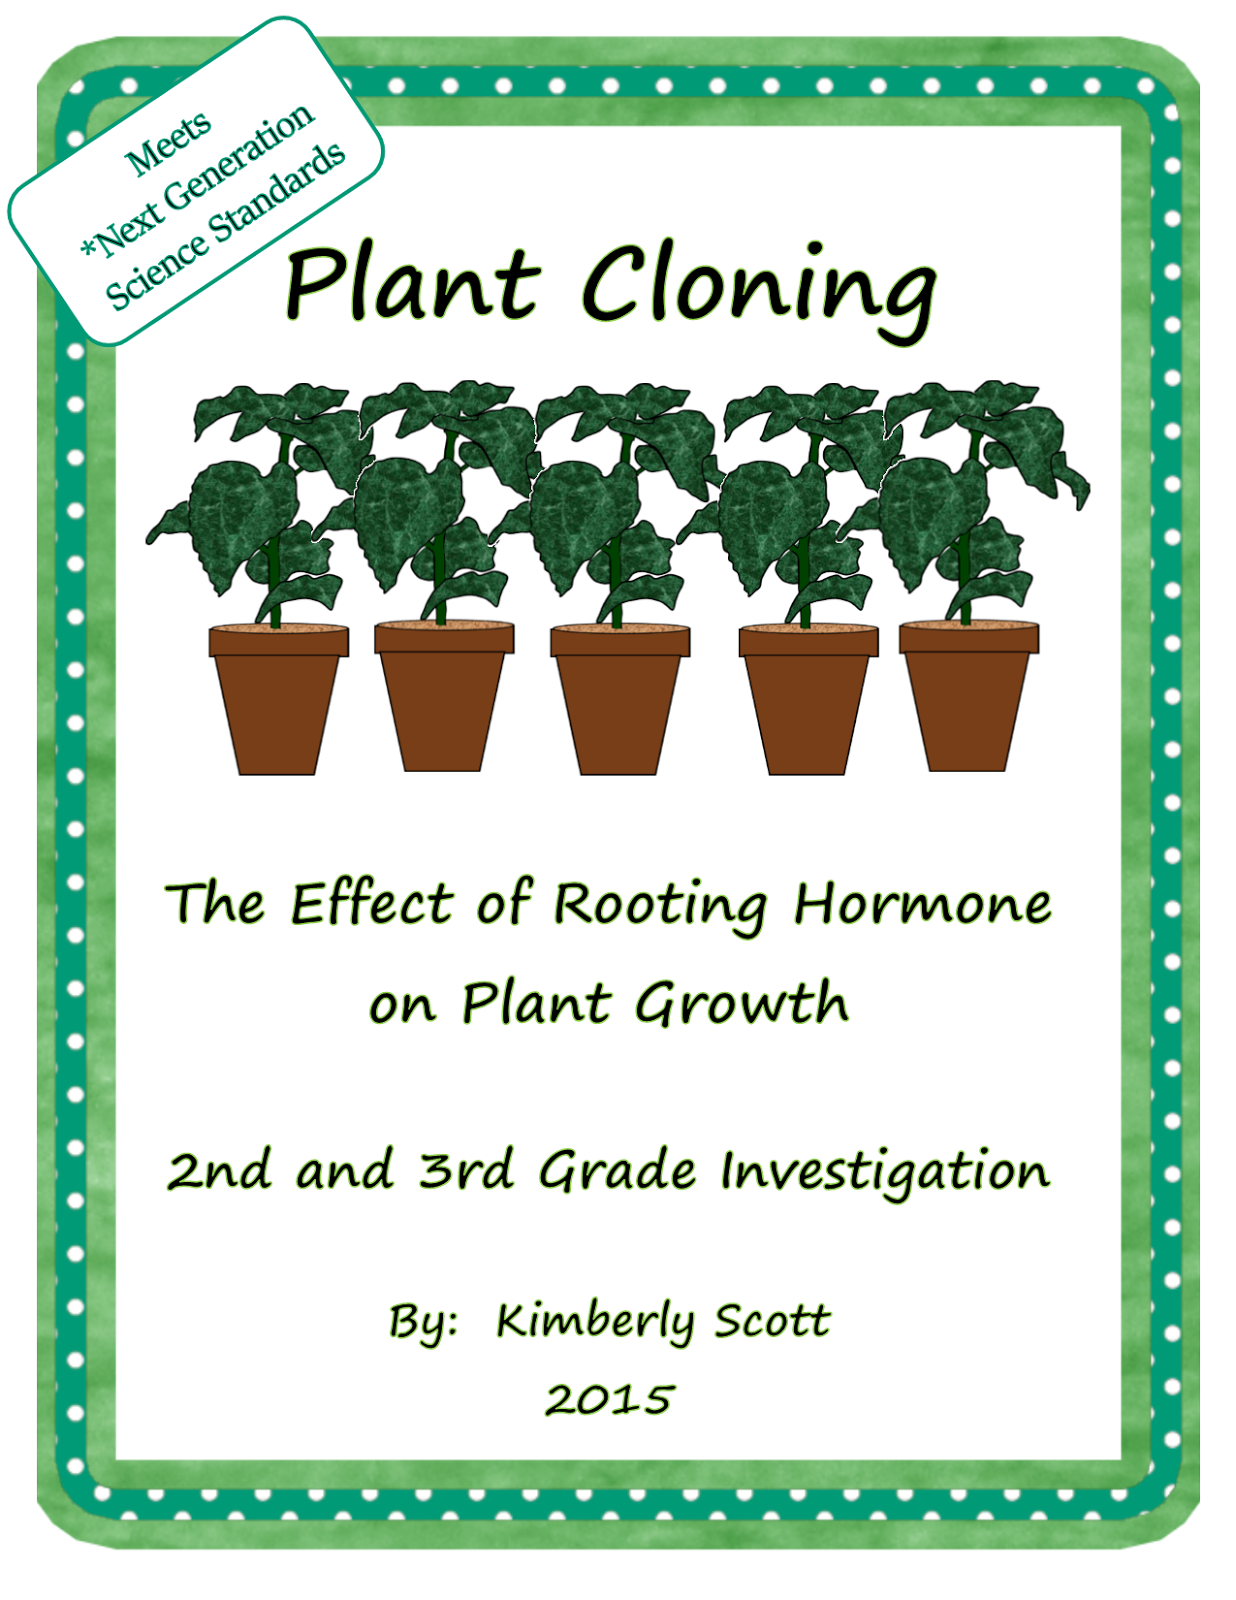 https://www.teacherspayteachers.com/Product/Plant-Cloning-Experimenting-with-Rooting-Hormone-for-2nd-and-3rd-Grade-1781306